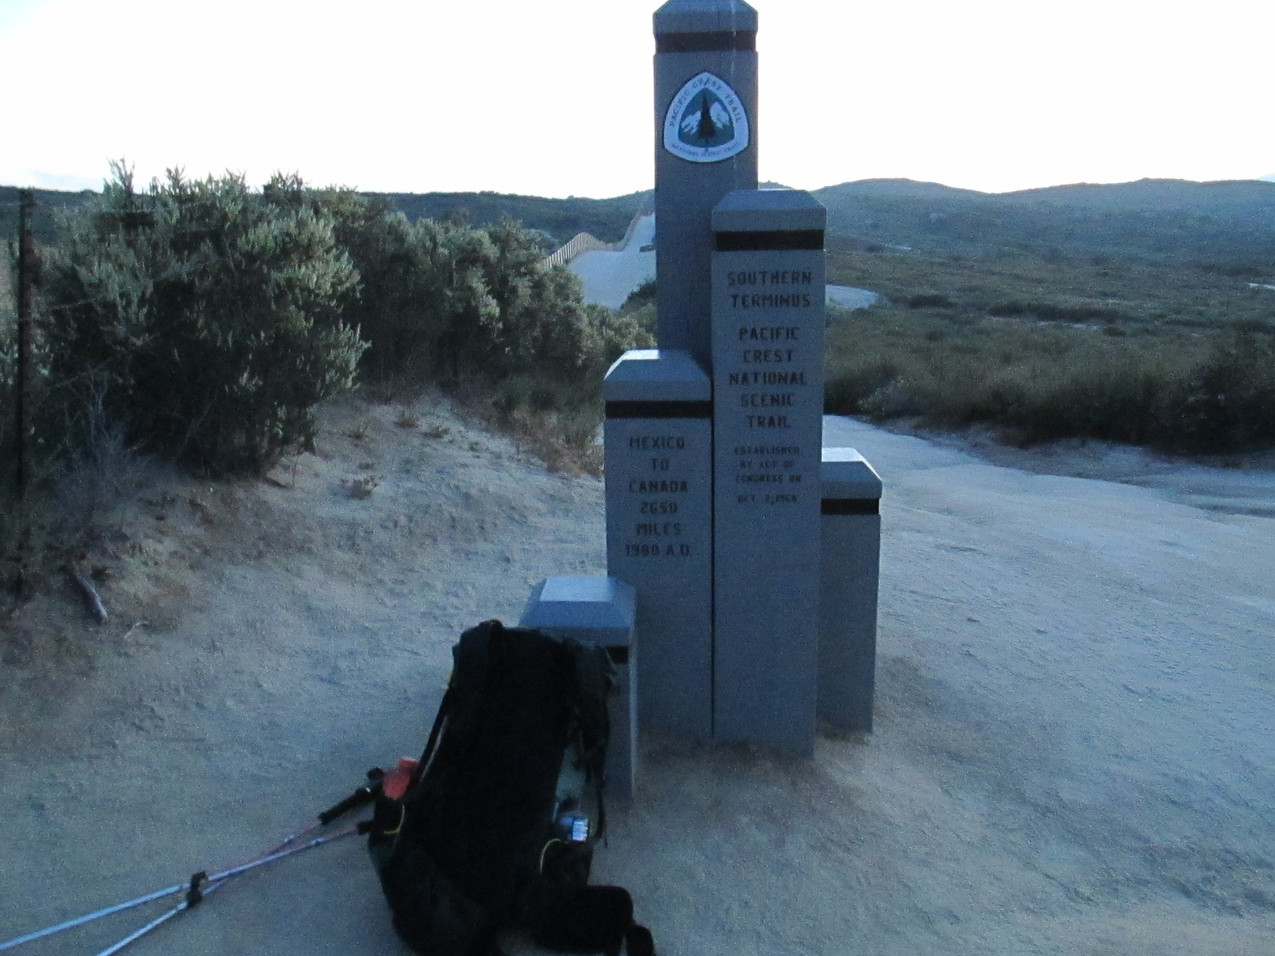 I finally got to the Southern Terminus of the PCT on May 10 at 8:00 PM.  It was a long, stressful day for me.